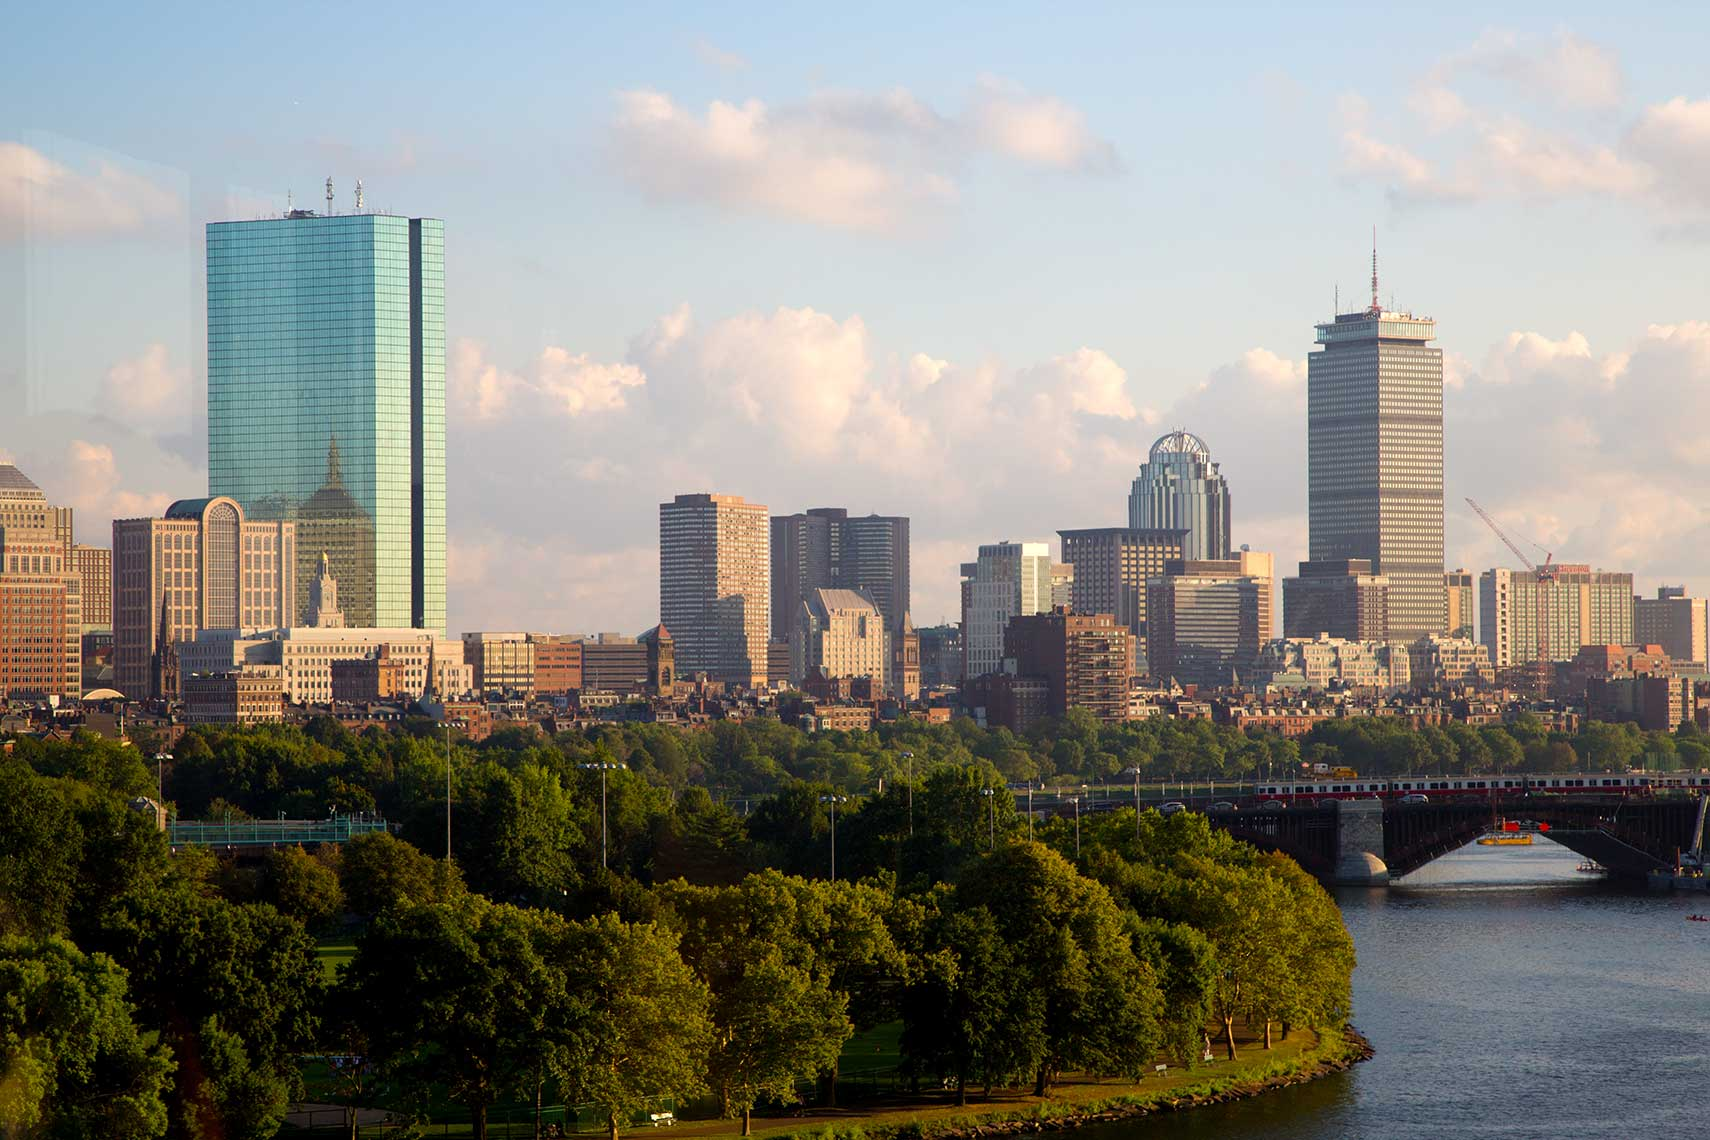 Back Bay Boston from Cambridge by the Longfellow Bridge